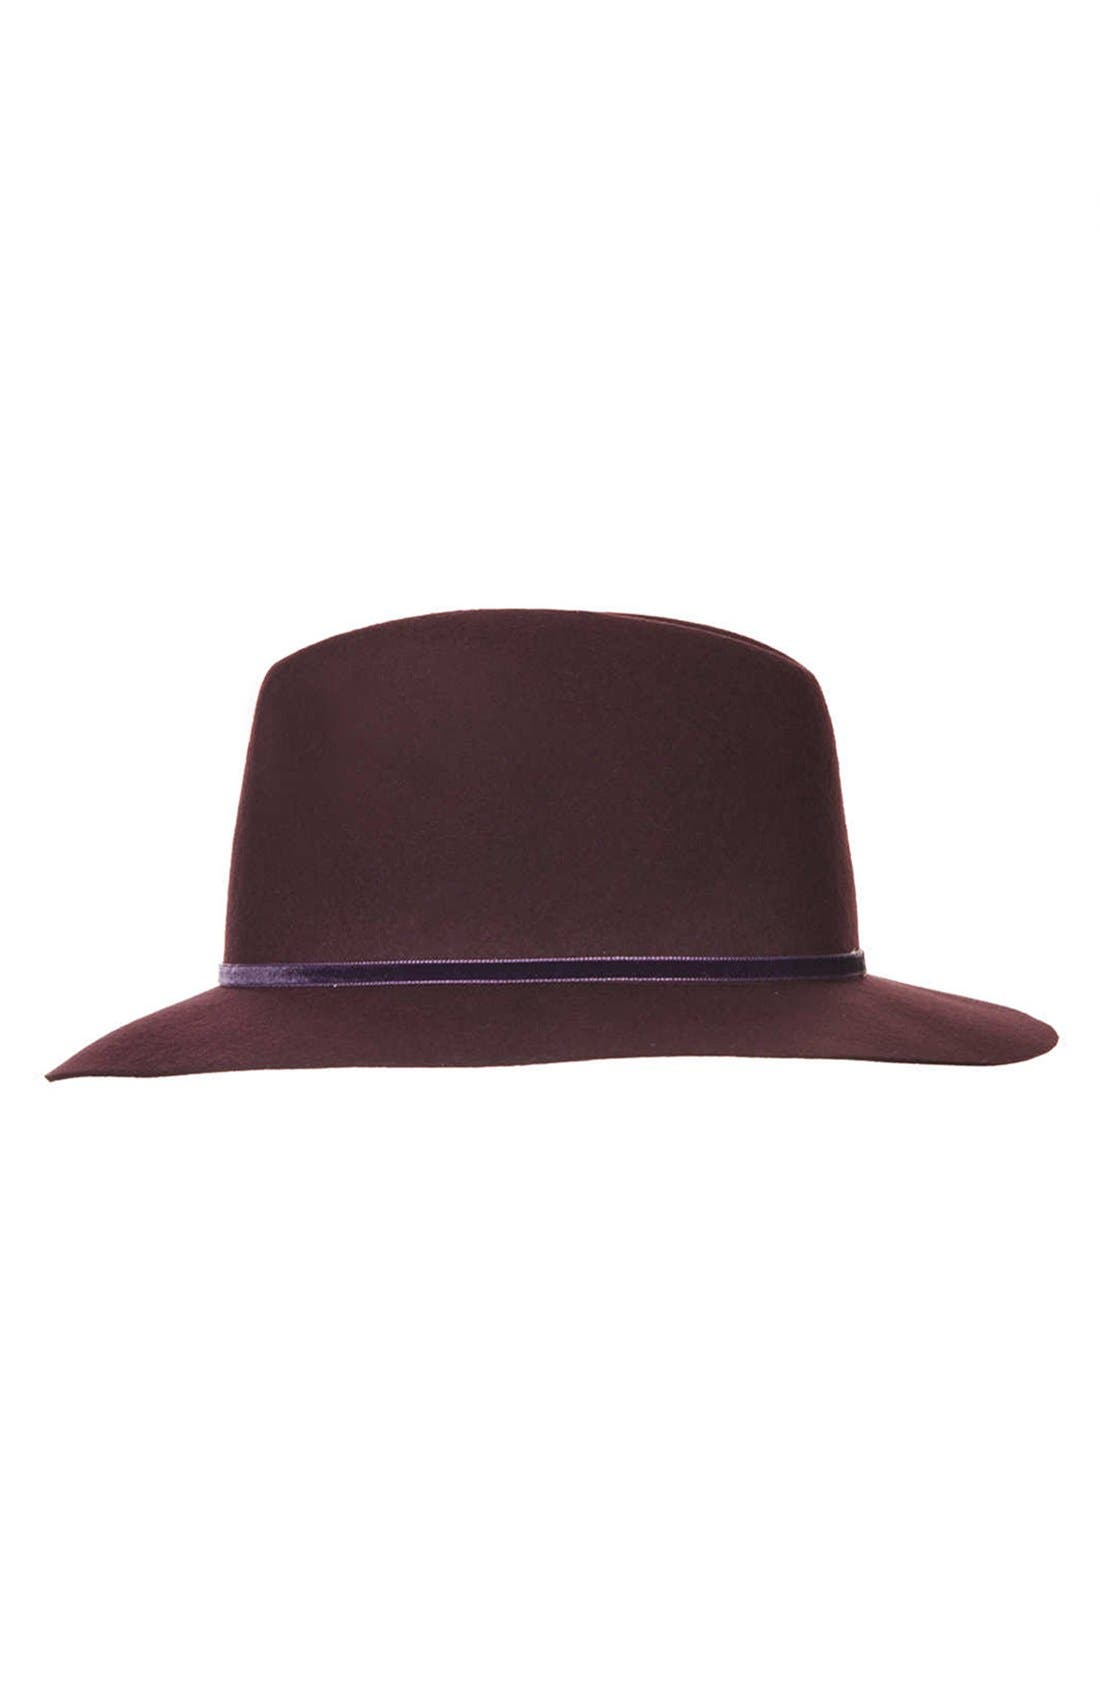 TOPSHOP, 'New Clean Edge' Wool Fedora, Alternate thumbnail 2, color, 930